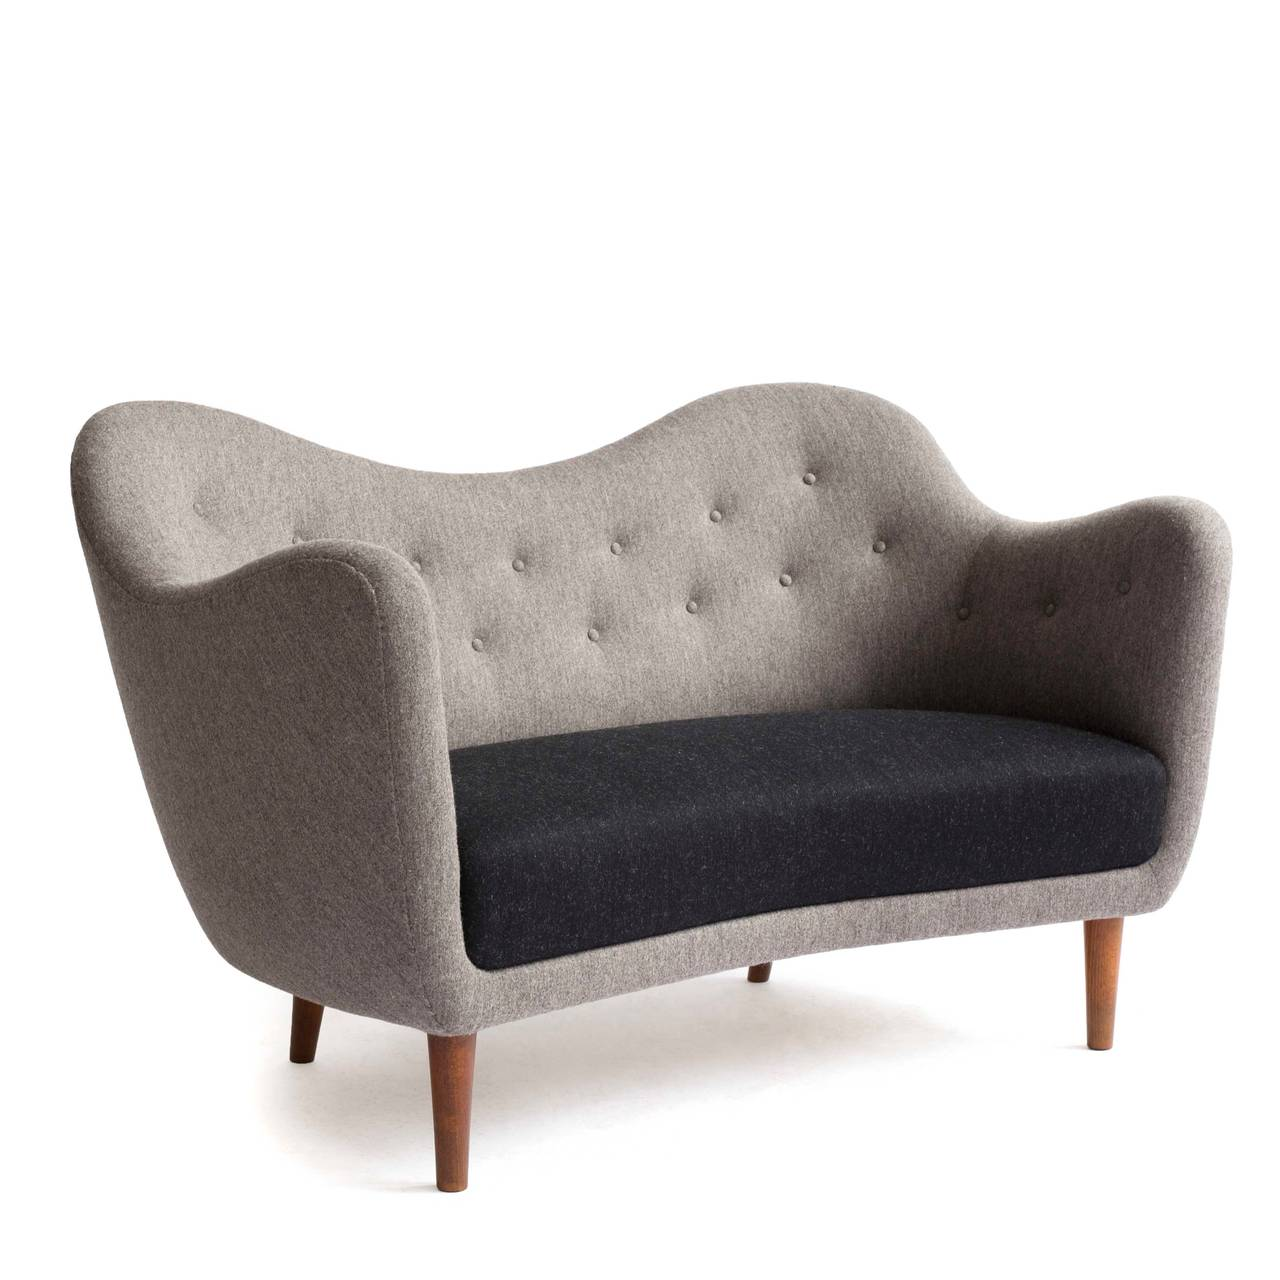 Scandinavian Modern Finn Juhl Bo46 Sofa Made by Bovirke For Sale